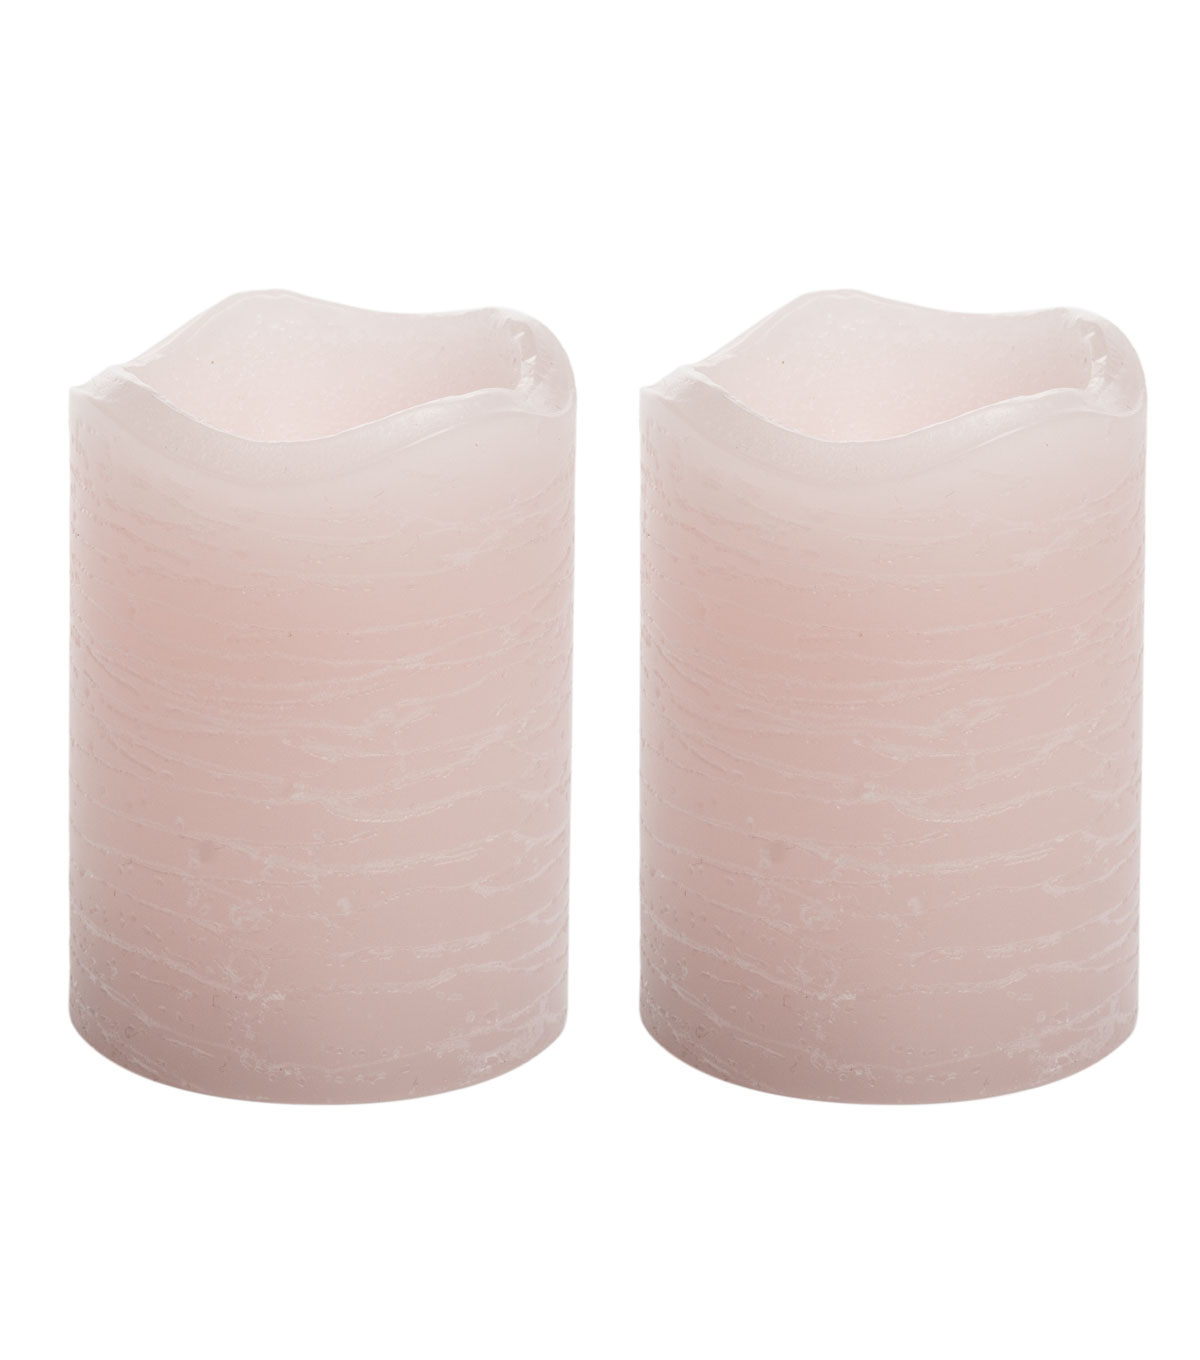 Hudson 43 2 pk 2.5\u0027\u0027 Votive Candles-Pink